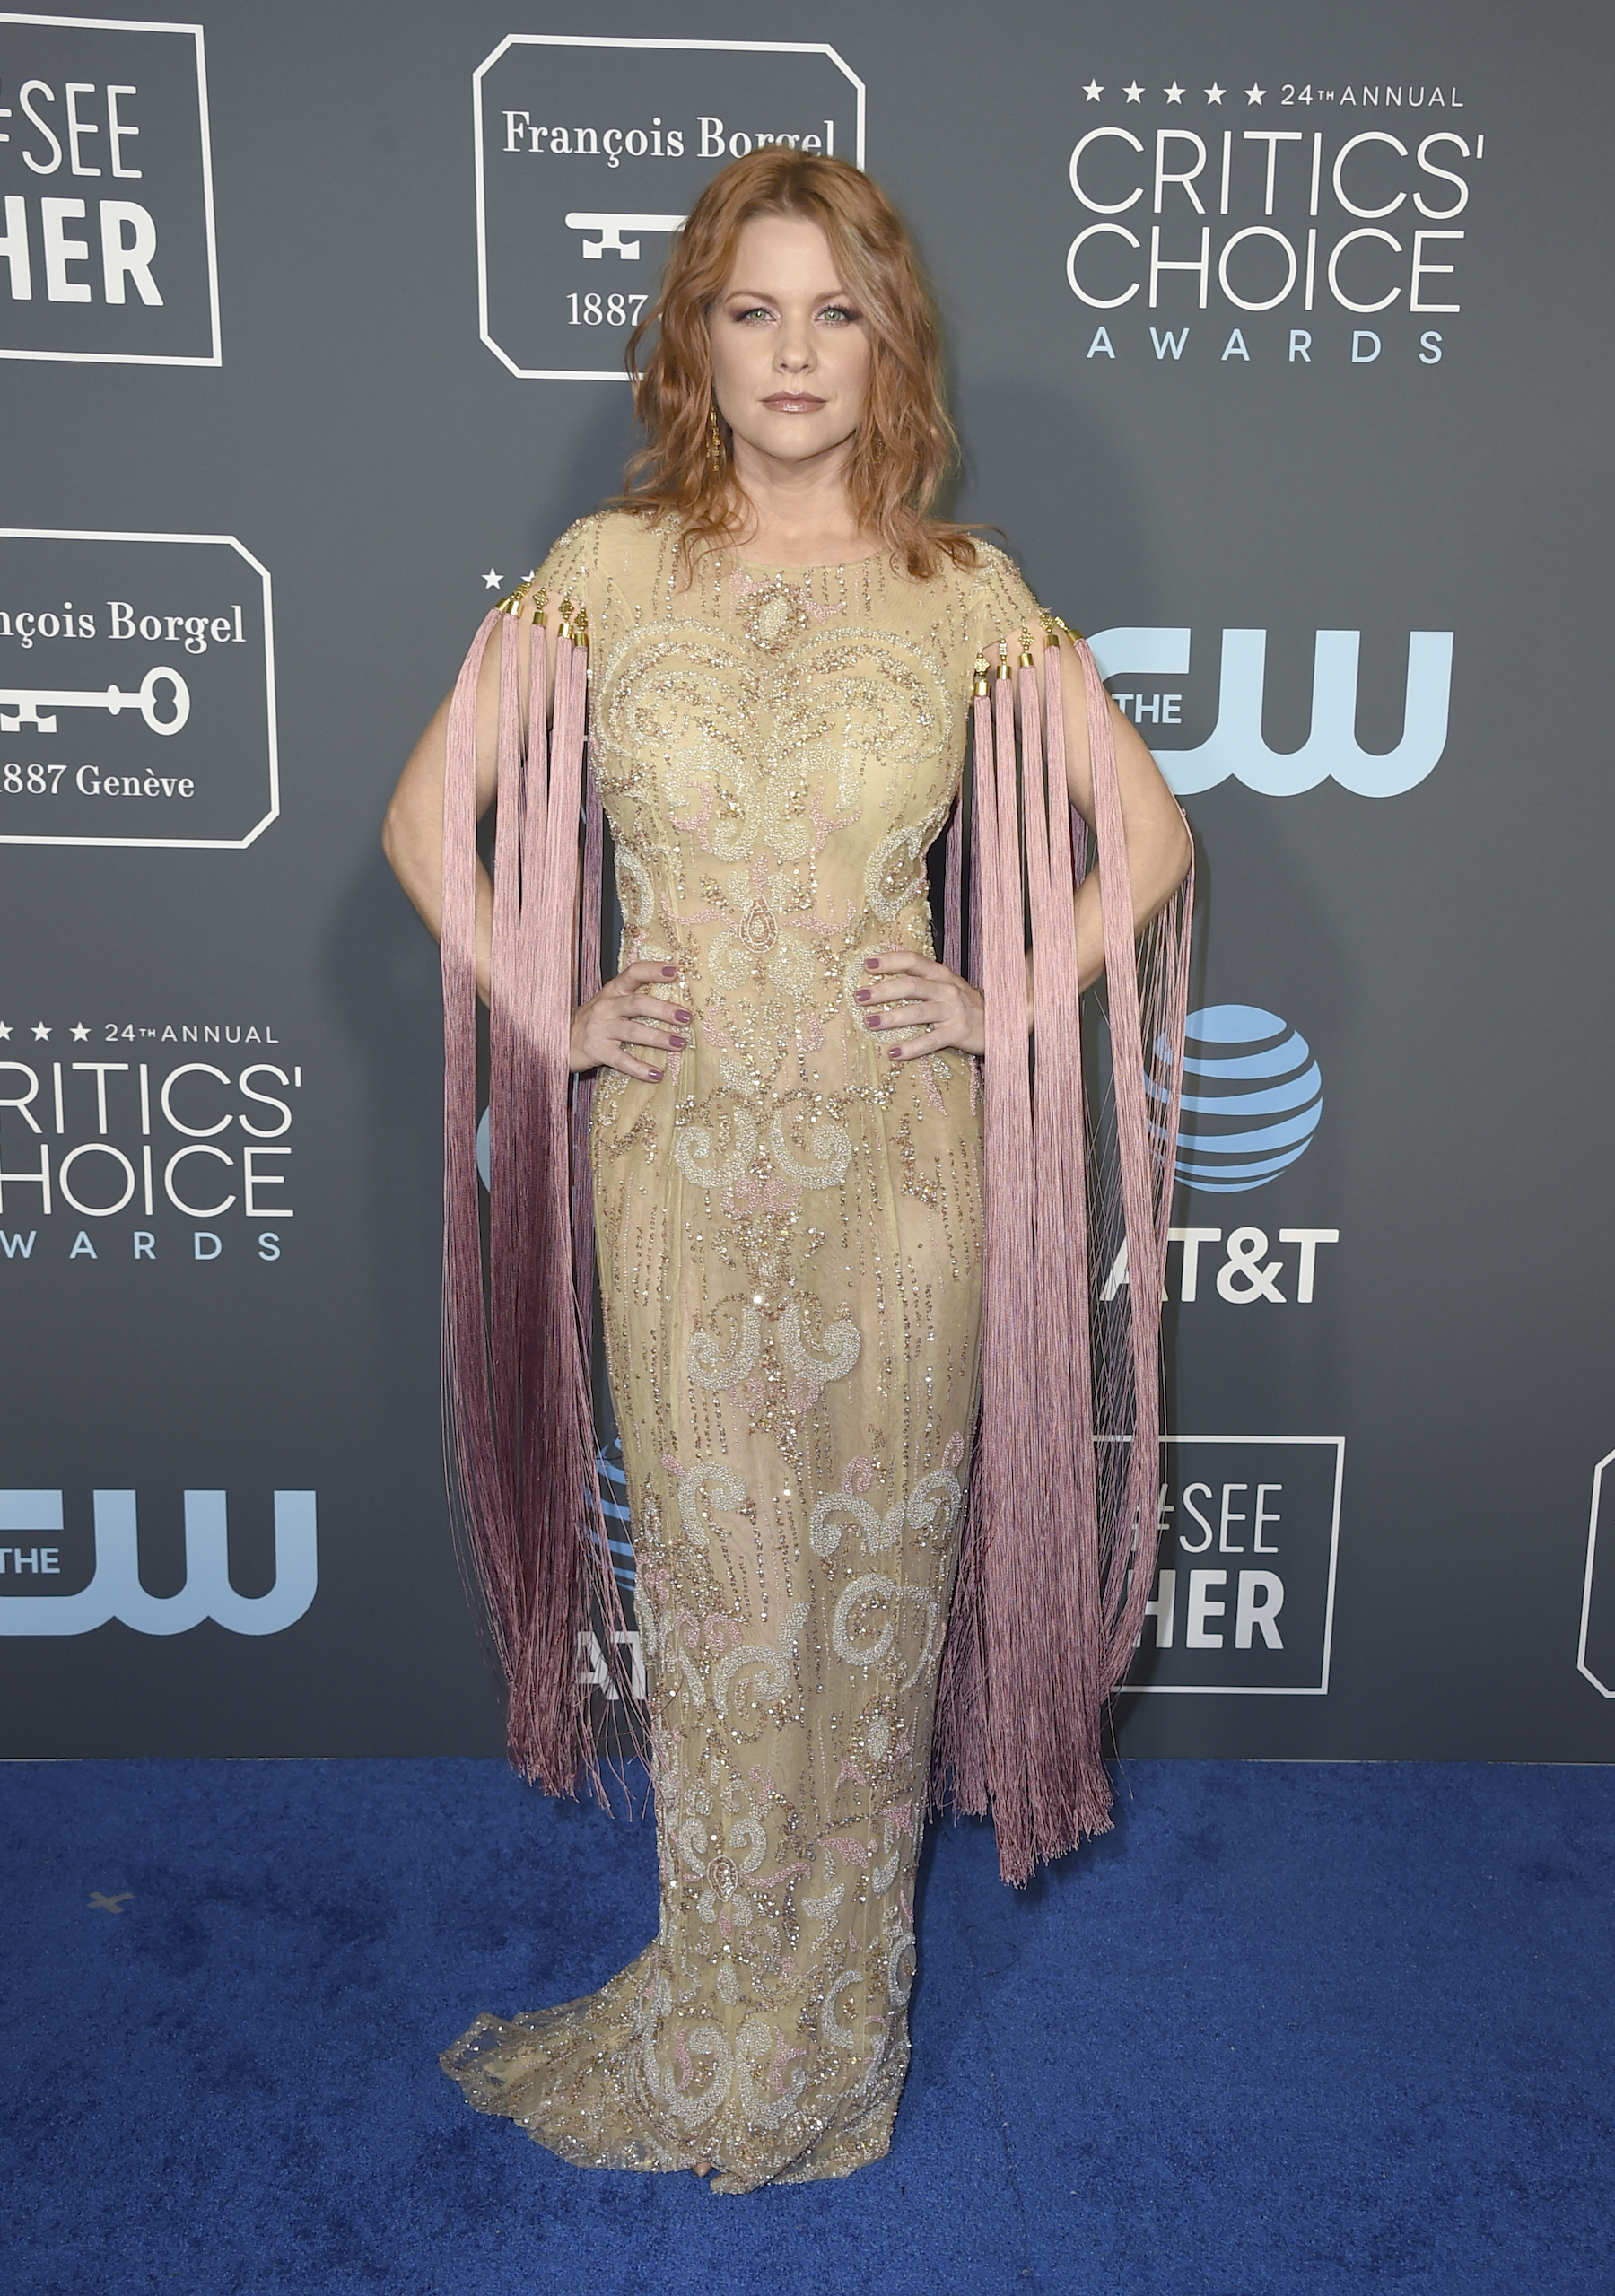 <div class='meta'><div class='origin-logo' data-origin='AP'></div><span class='caption-text' data-credit='Jordan Strauss/Invision/AP'>Carrie Keagan arrives at the 24th annual Critics' Choice Awards on Sunday, Jan. 13, 2019, at the Barker Hangar in Santa Monica, Calif.</span></div>